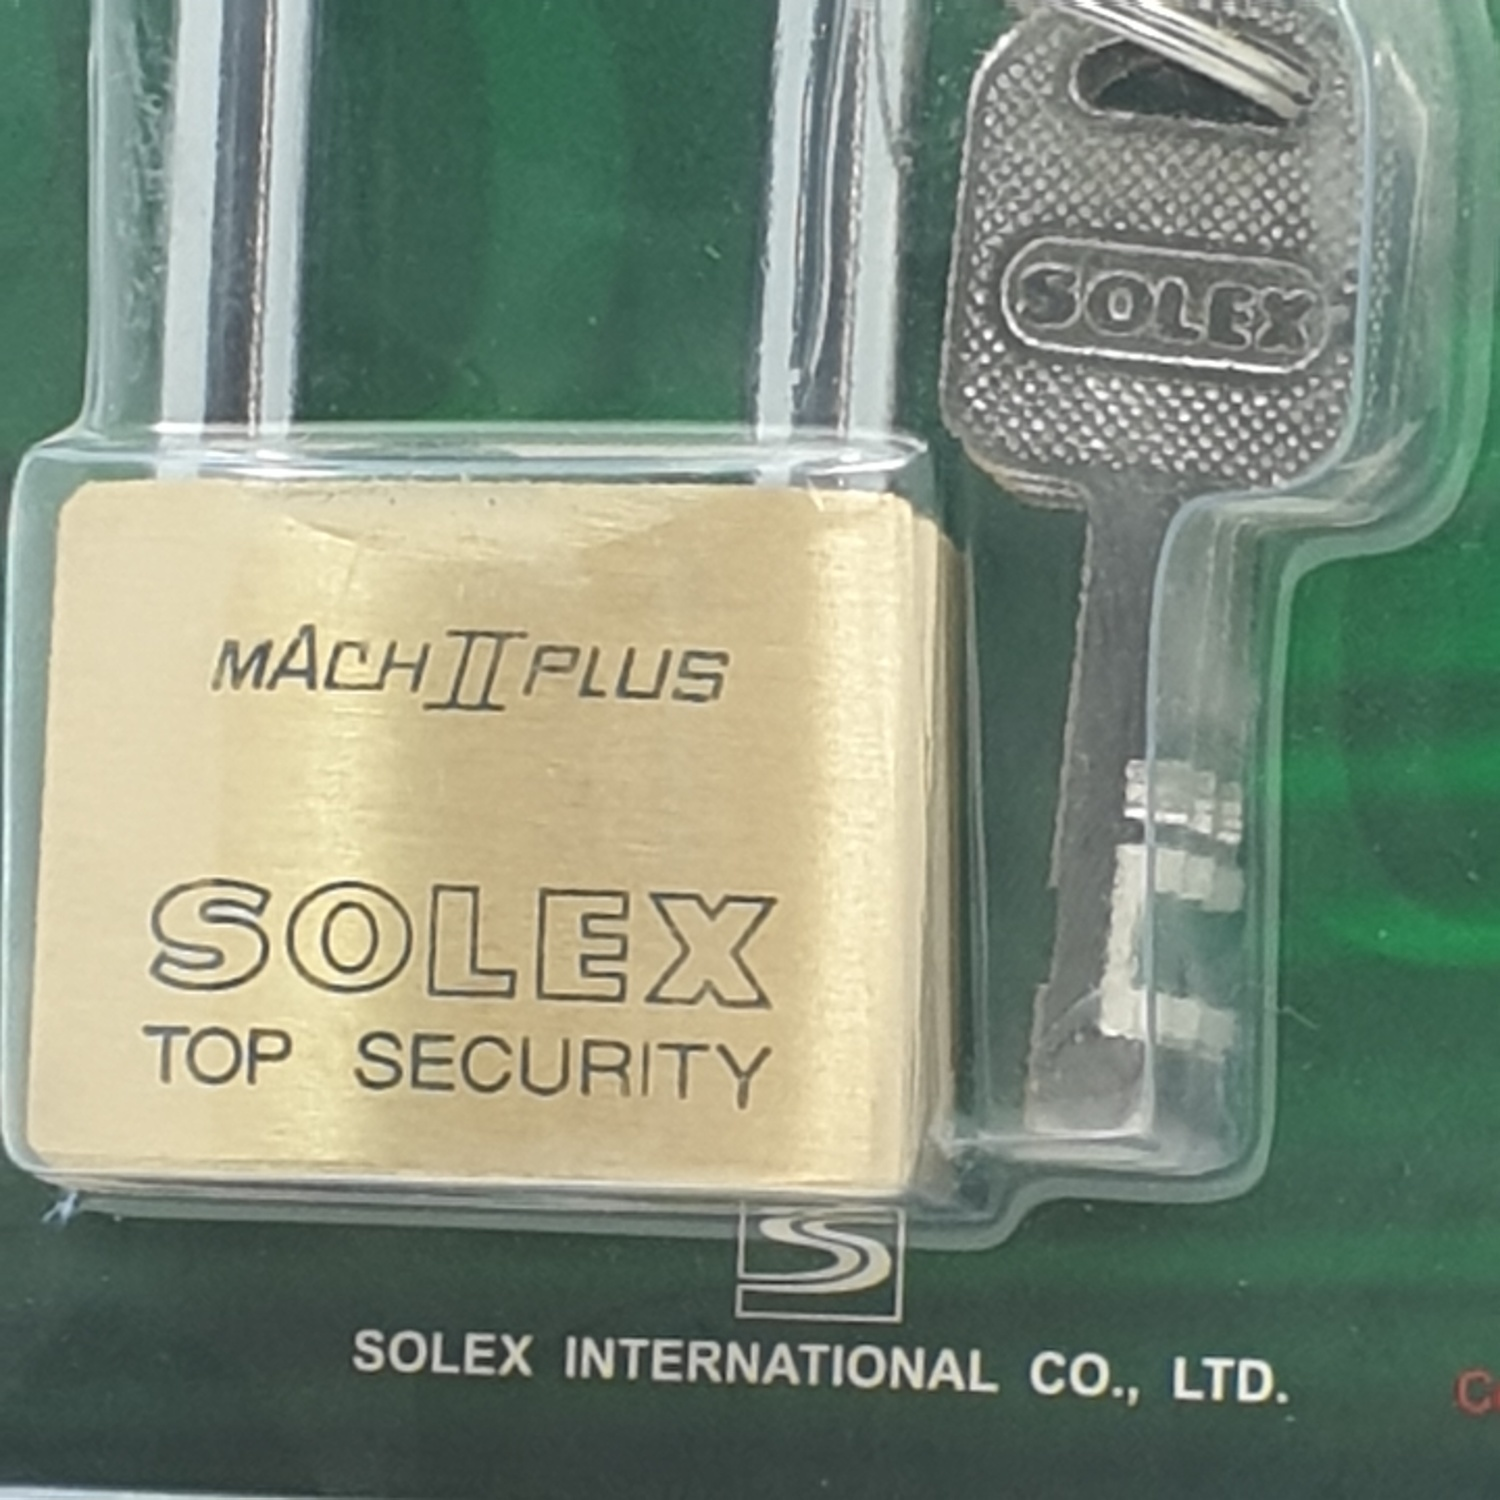 SOLEX 40 mm key padlock MACH II L 40MM  สีทอง